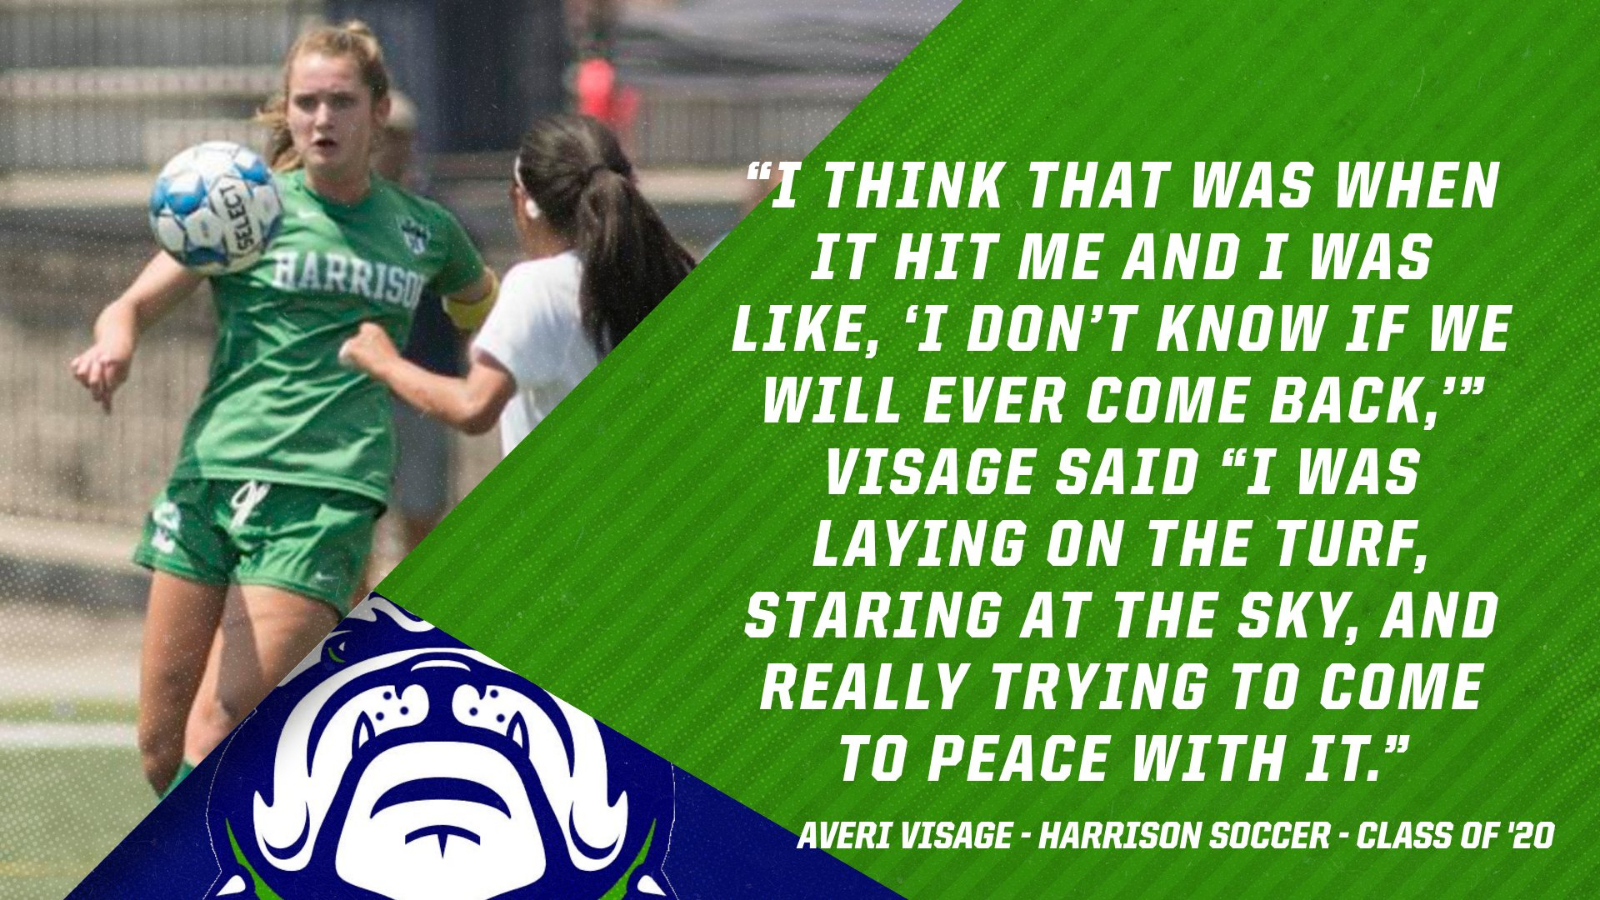 Senior Night Article – Averi Visage